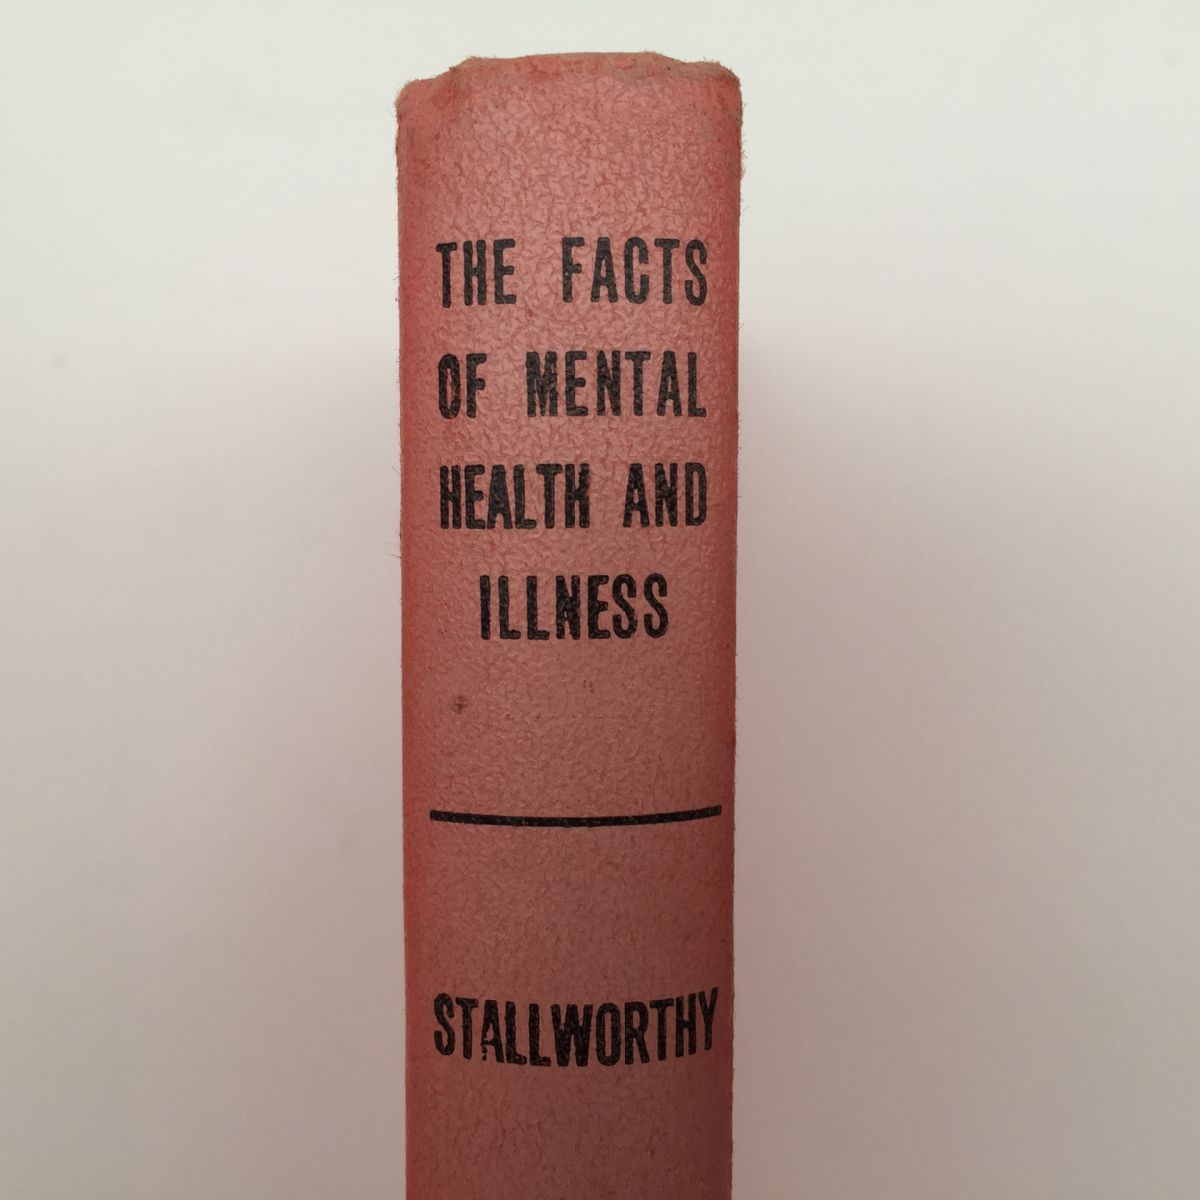 The Facts of Mental Health and Illness